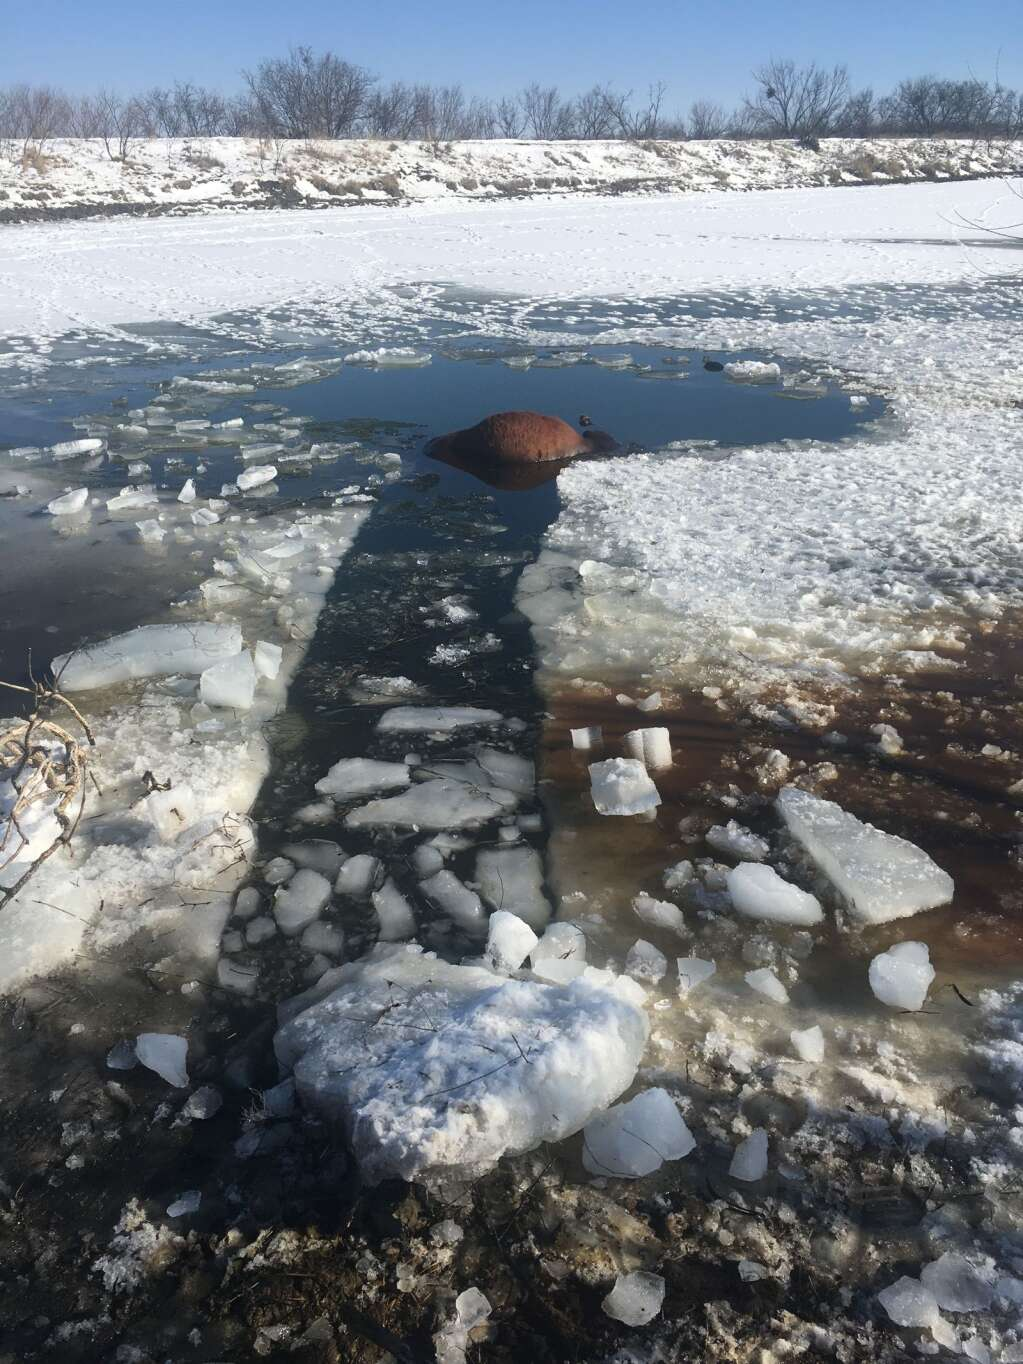 Once cattle went through the ice, the ranchers chopped channels in the ice to reach them. Courtesy of Todd McCartney.